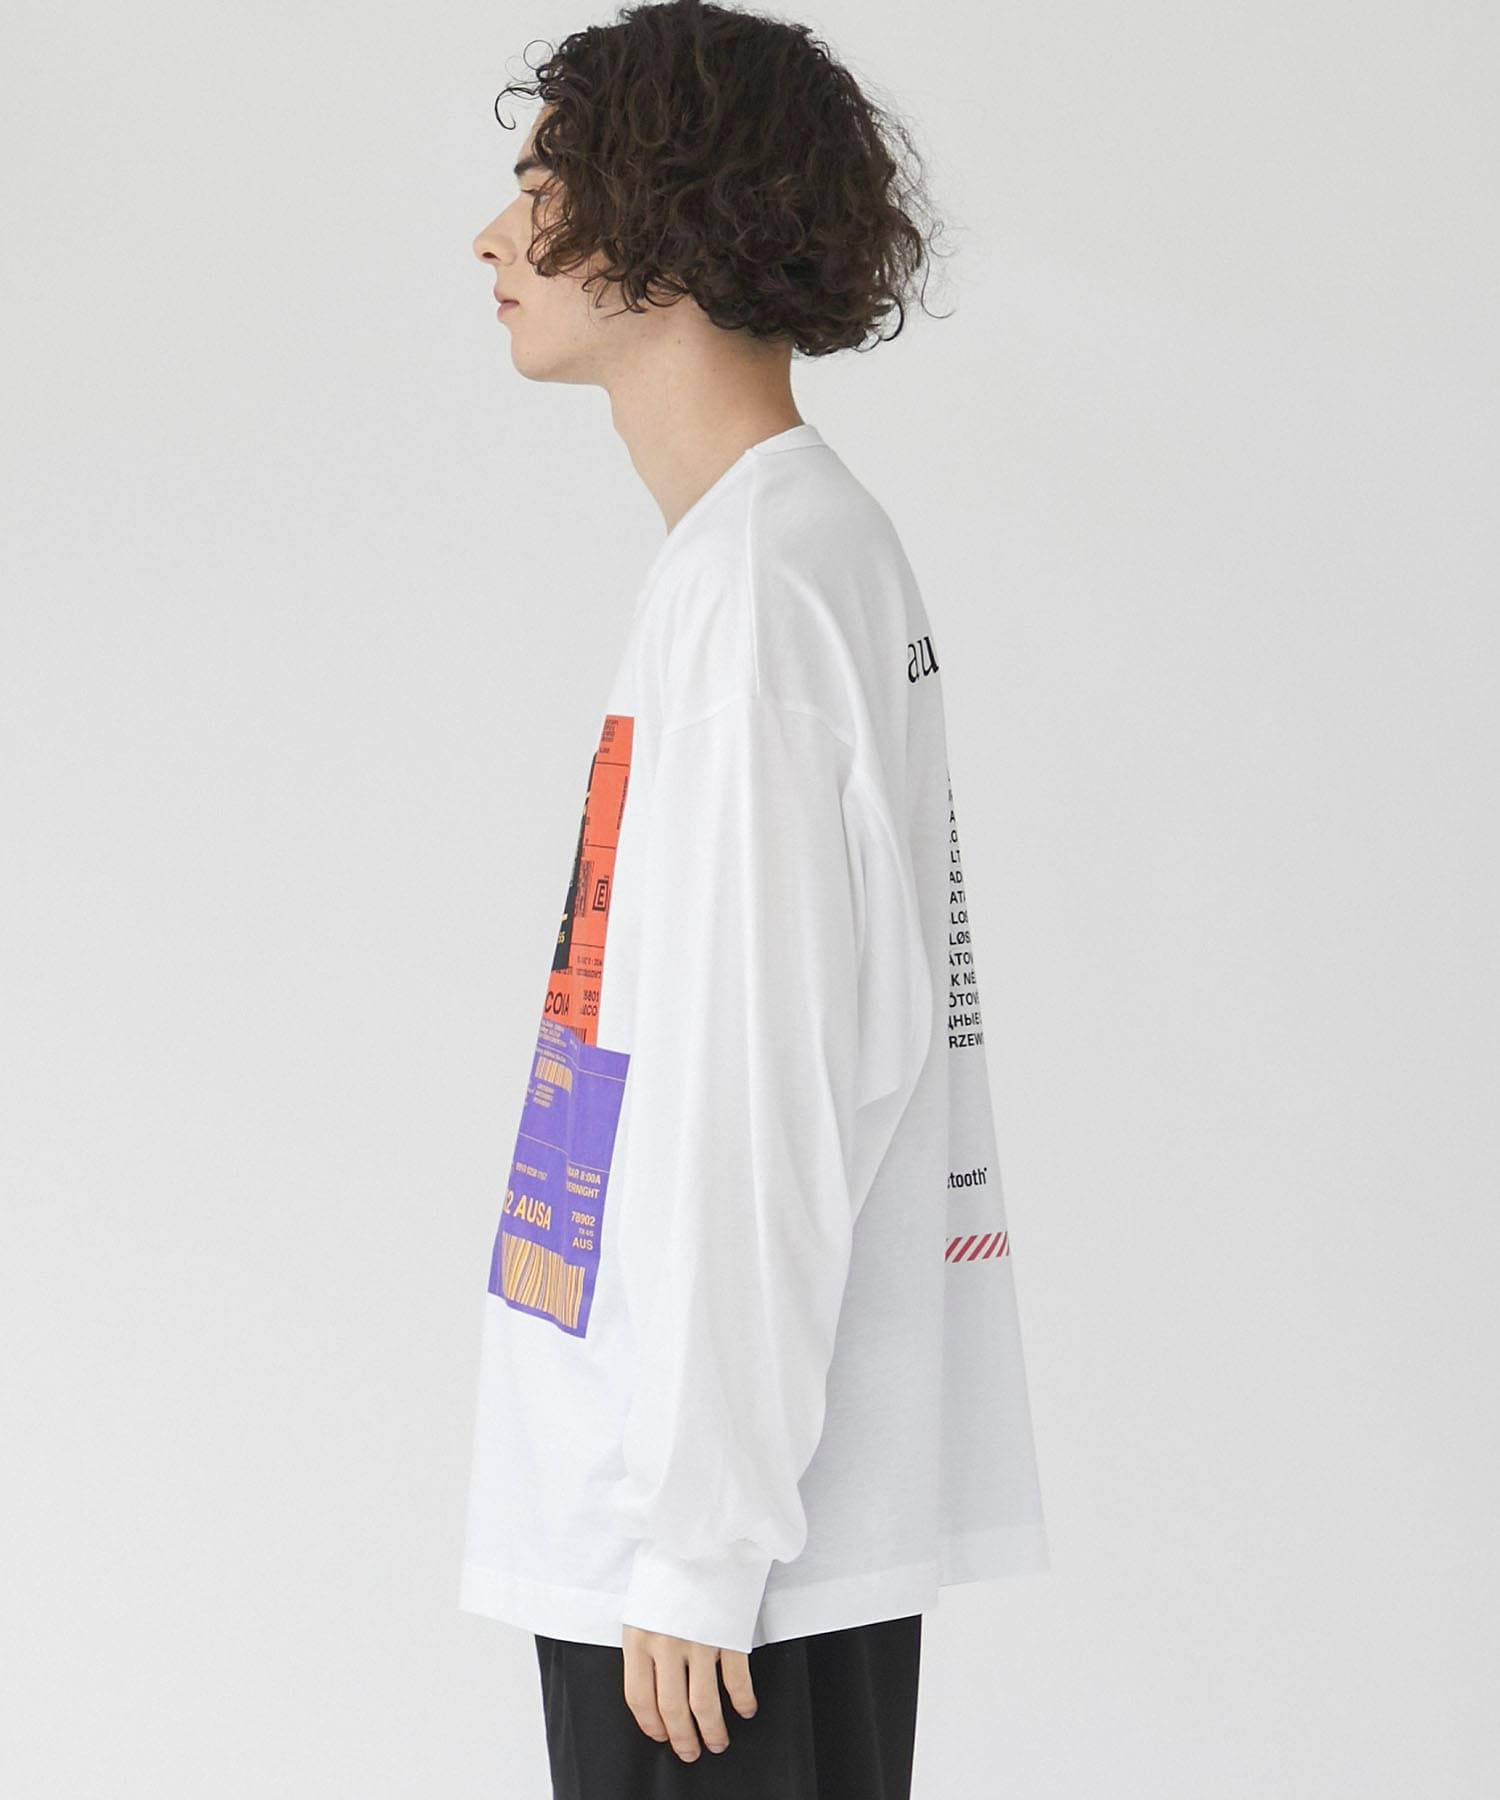 STUDIOUS限定BACK DESIGN LONG TEE SHAREEF